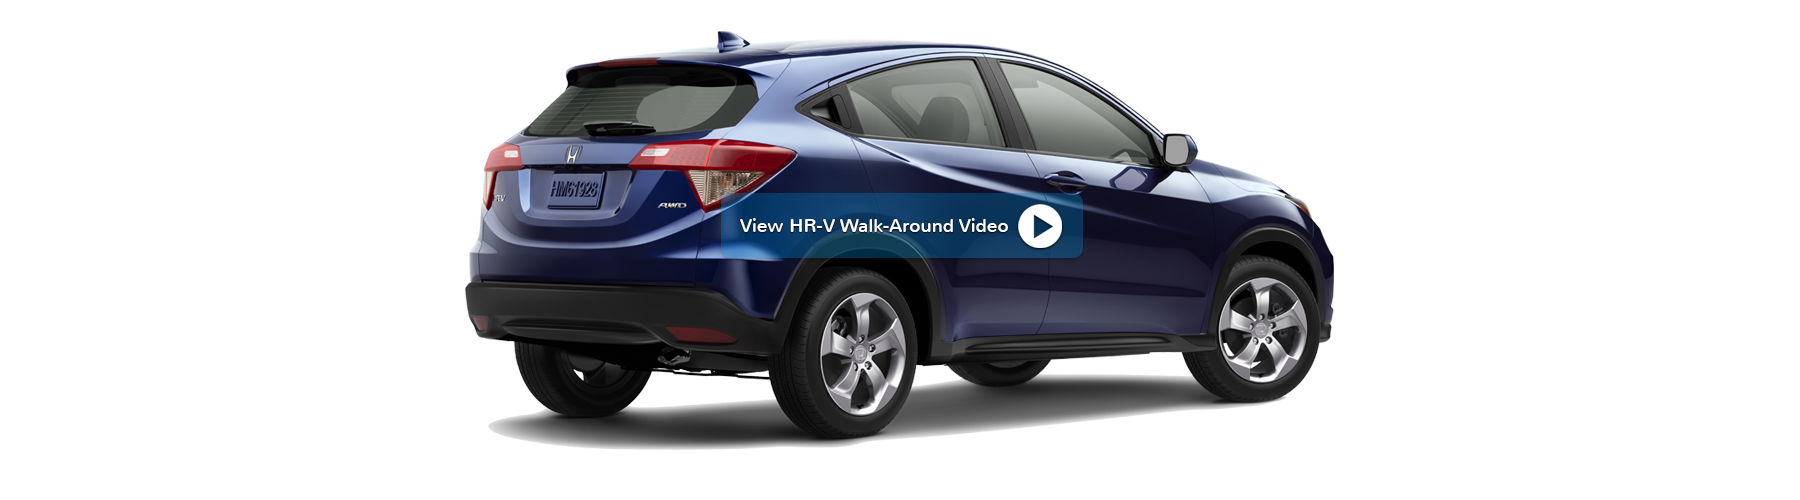 2016 honda hr v new england honda dealers for Honda dealer worcester ma